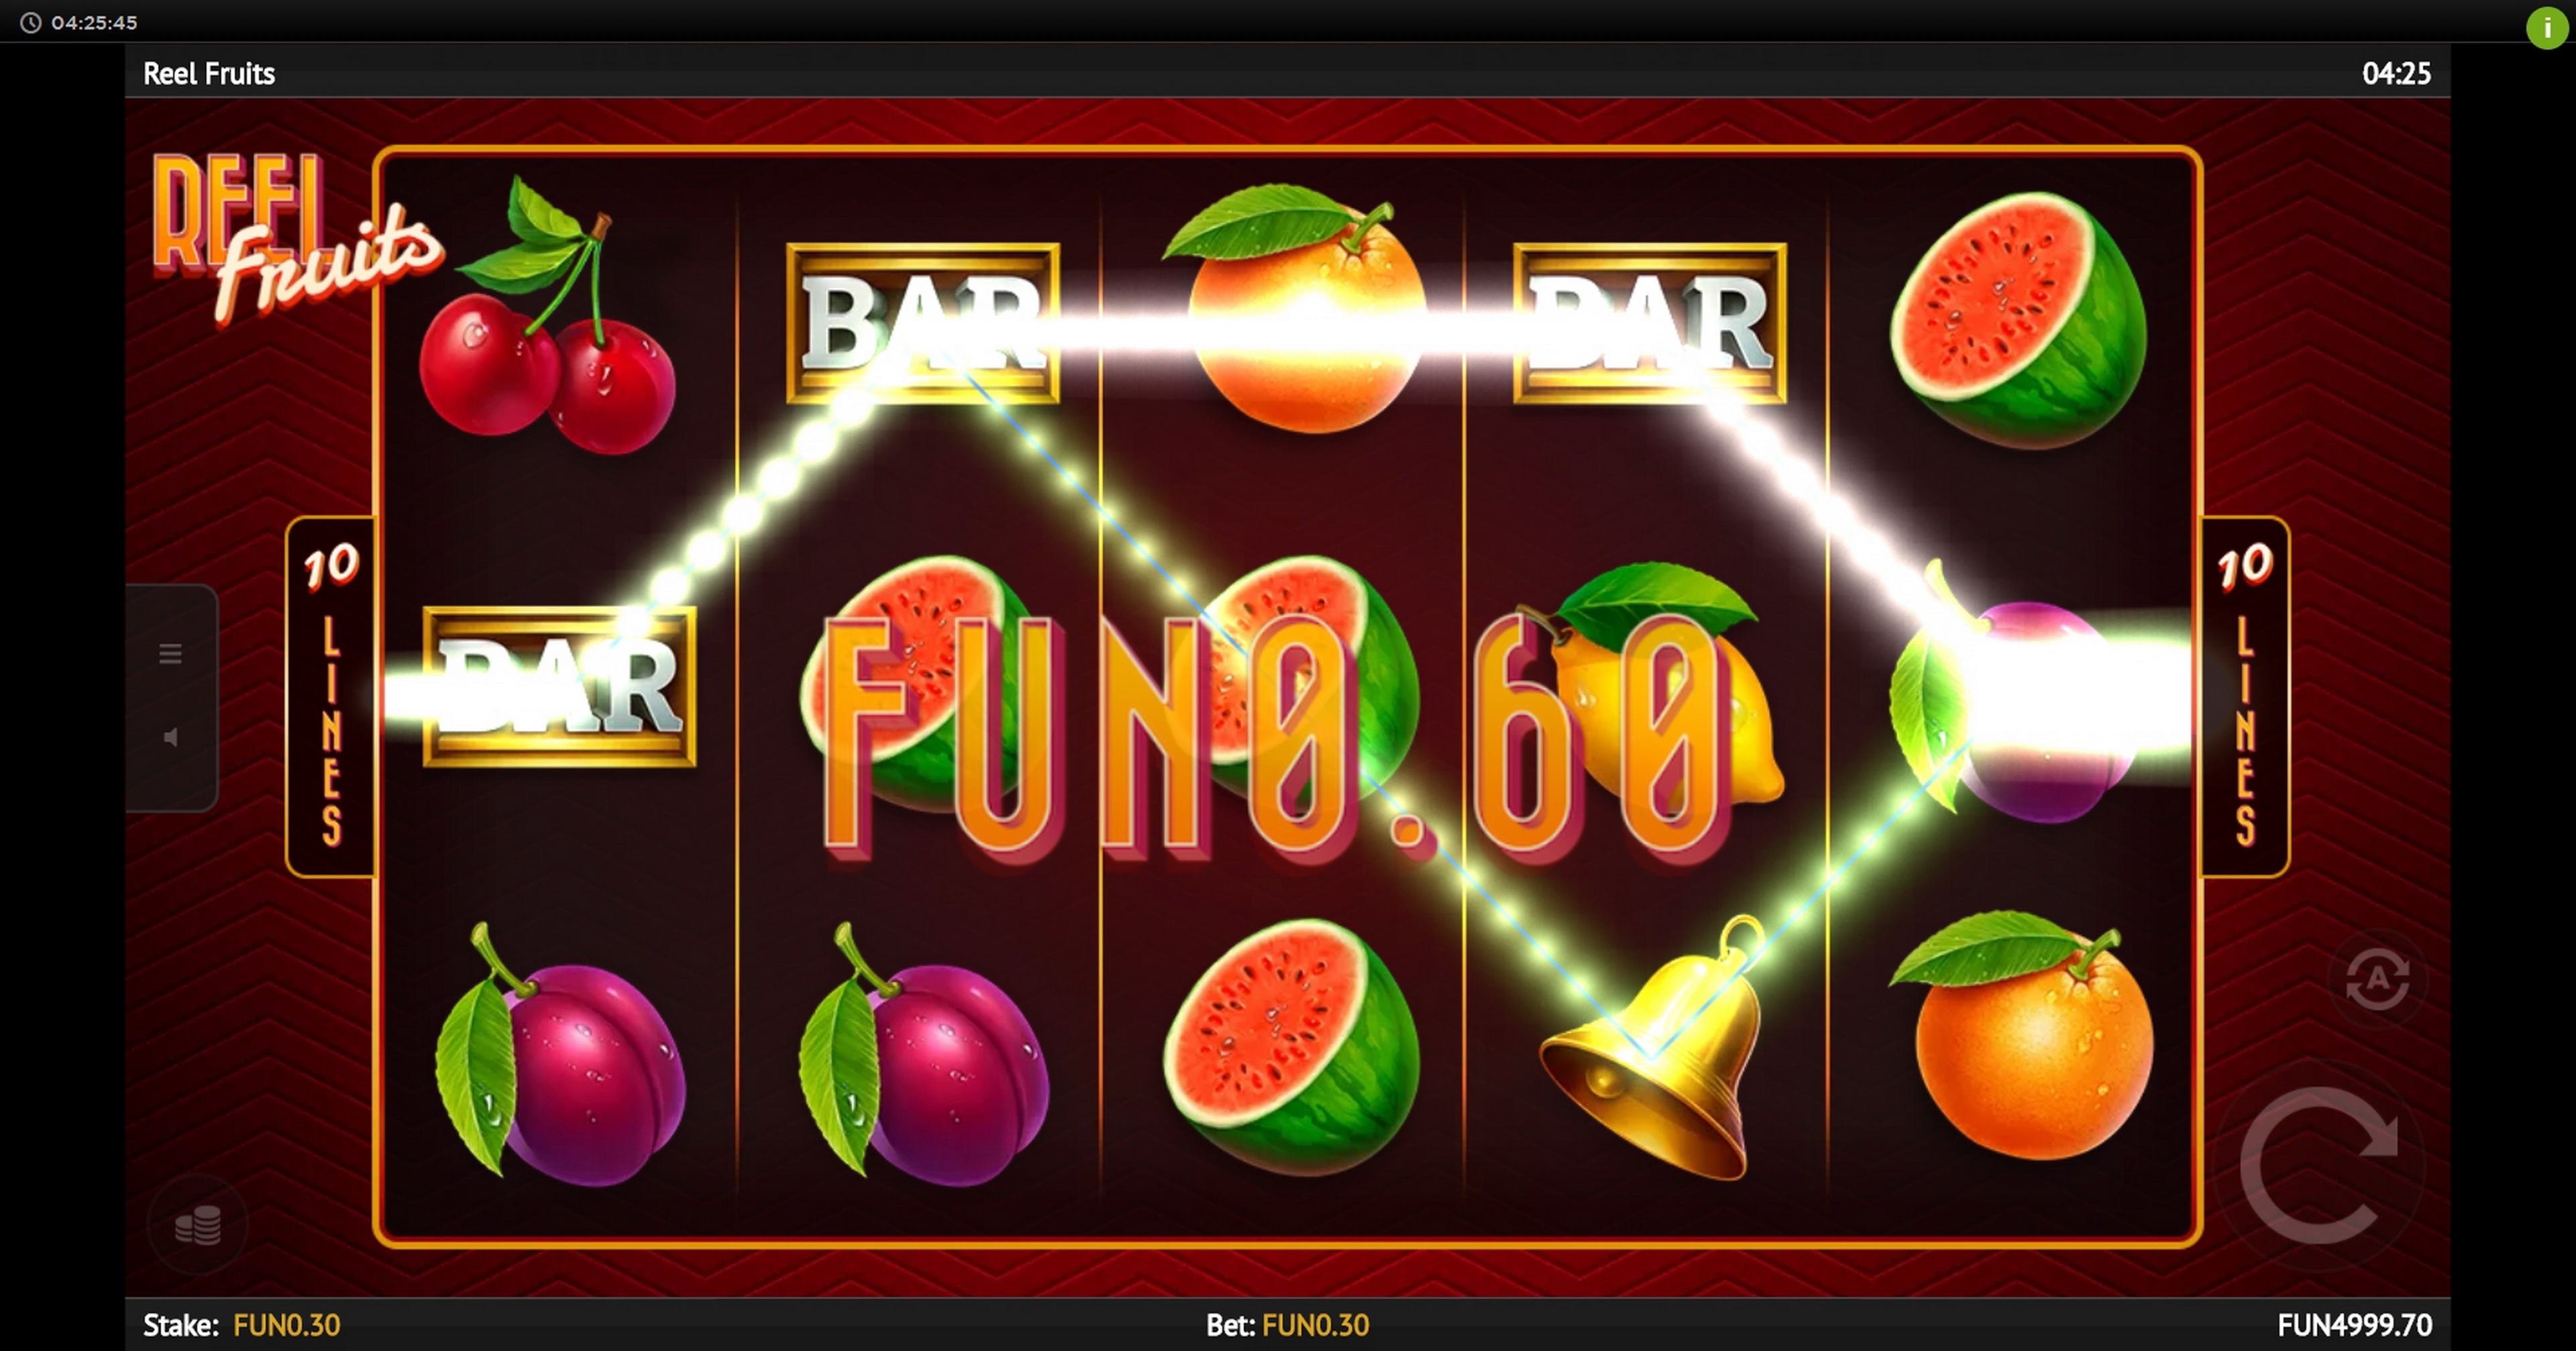 Win Money in Reel Fruits! Free Slot Game by 1x2 Gaming